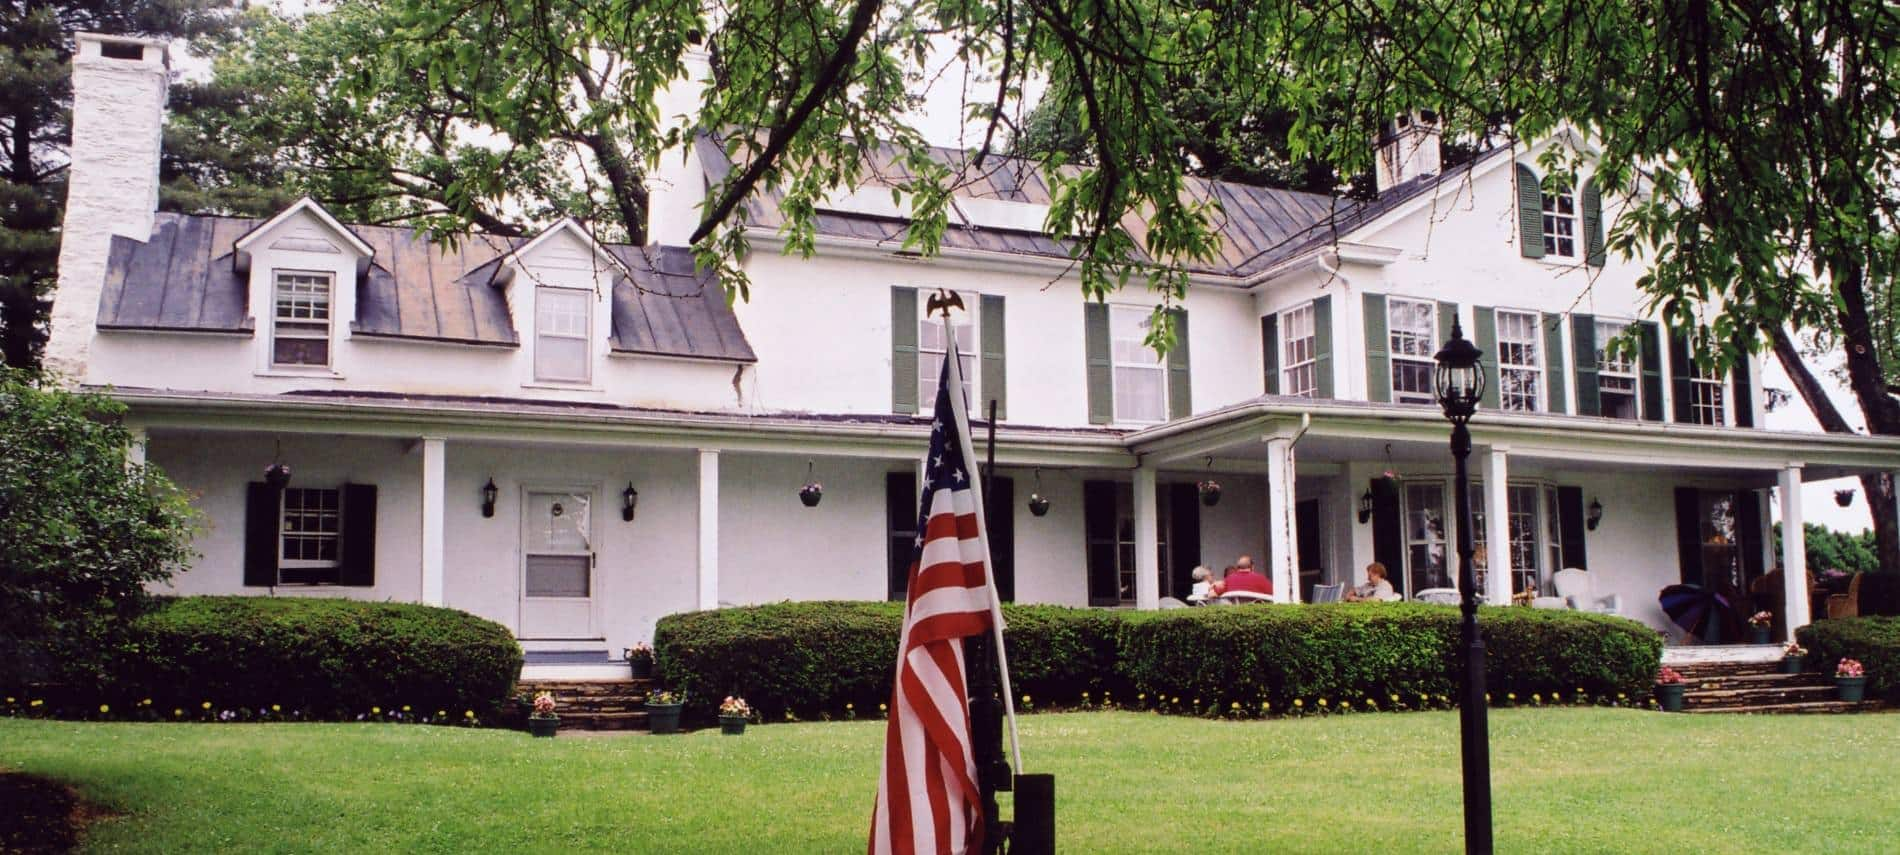 Exterior view of property painted white with dark shutters surrounded by a large green lawn and trees